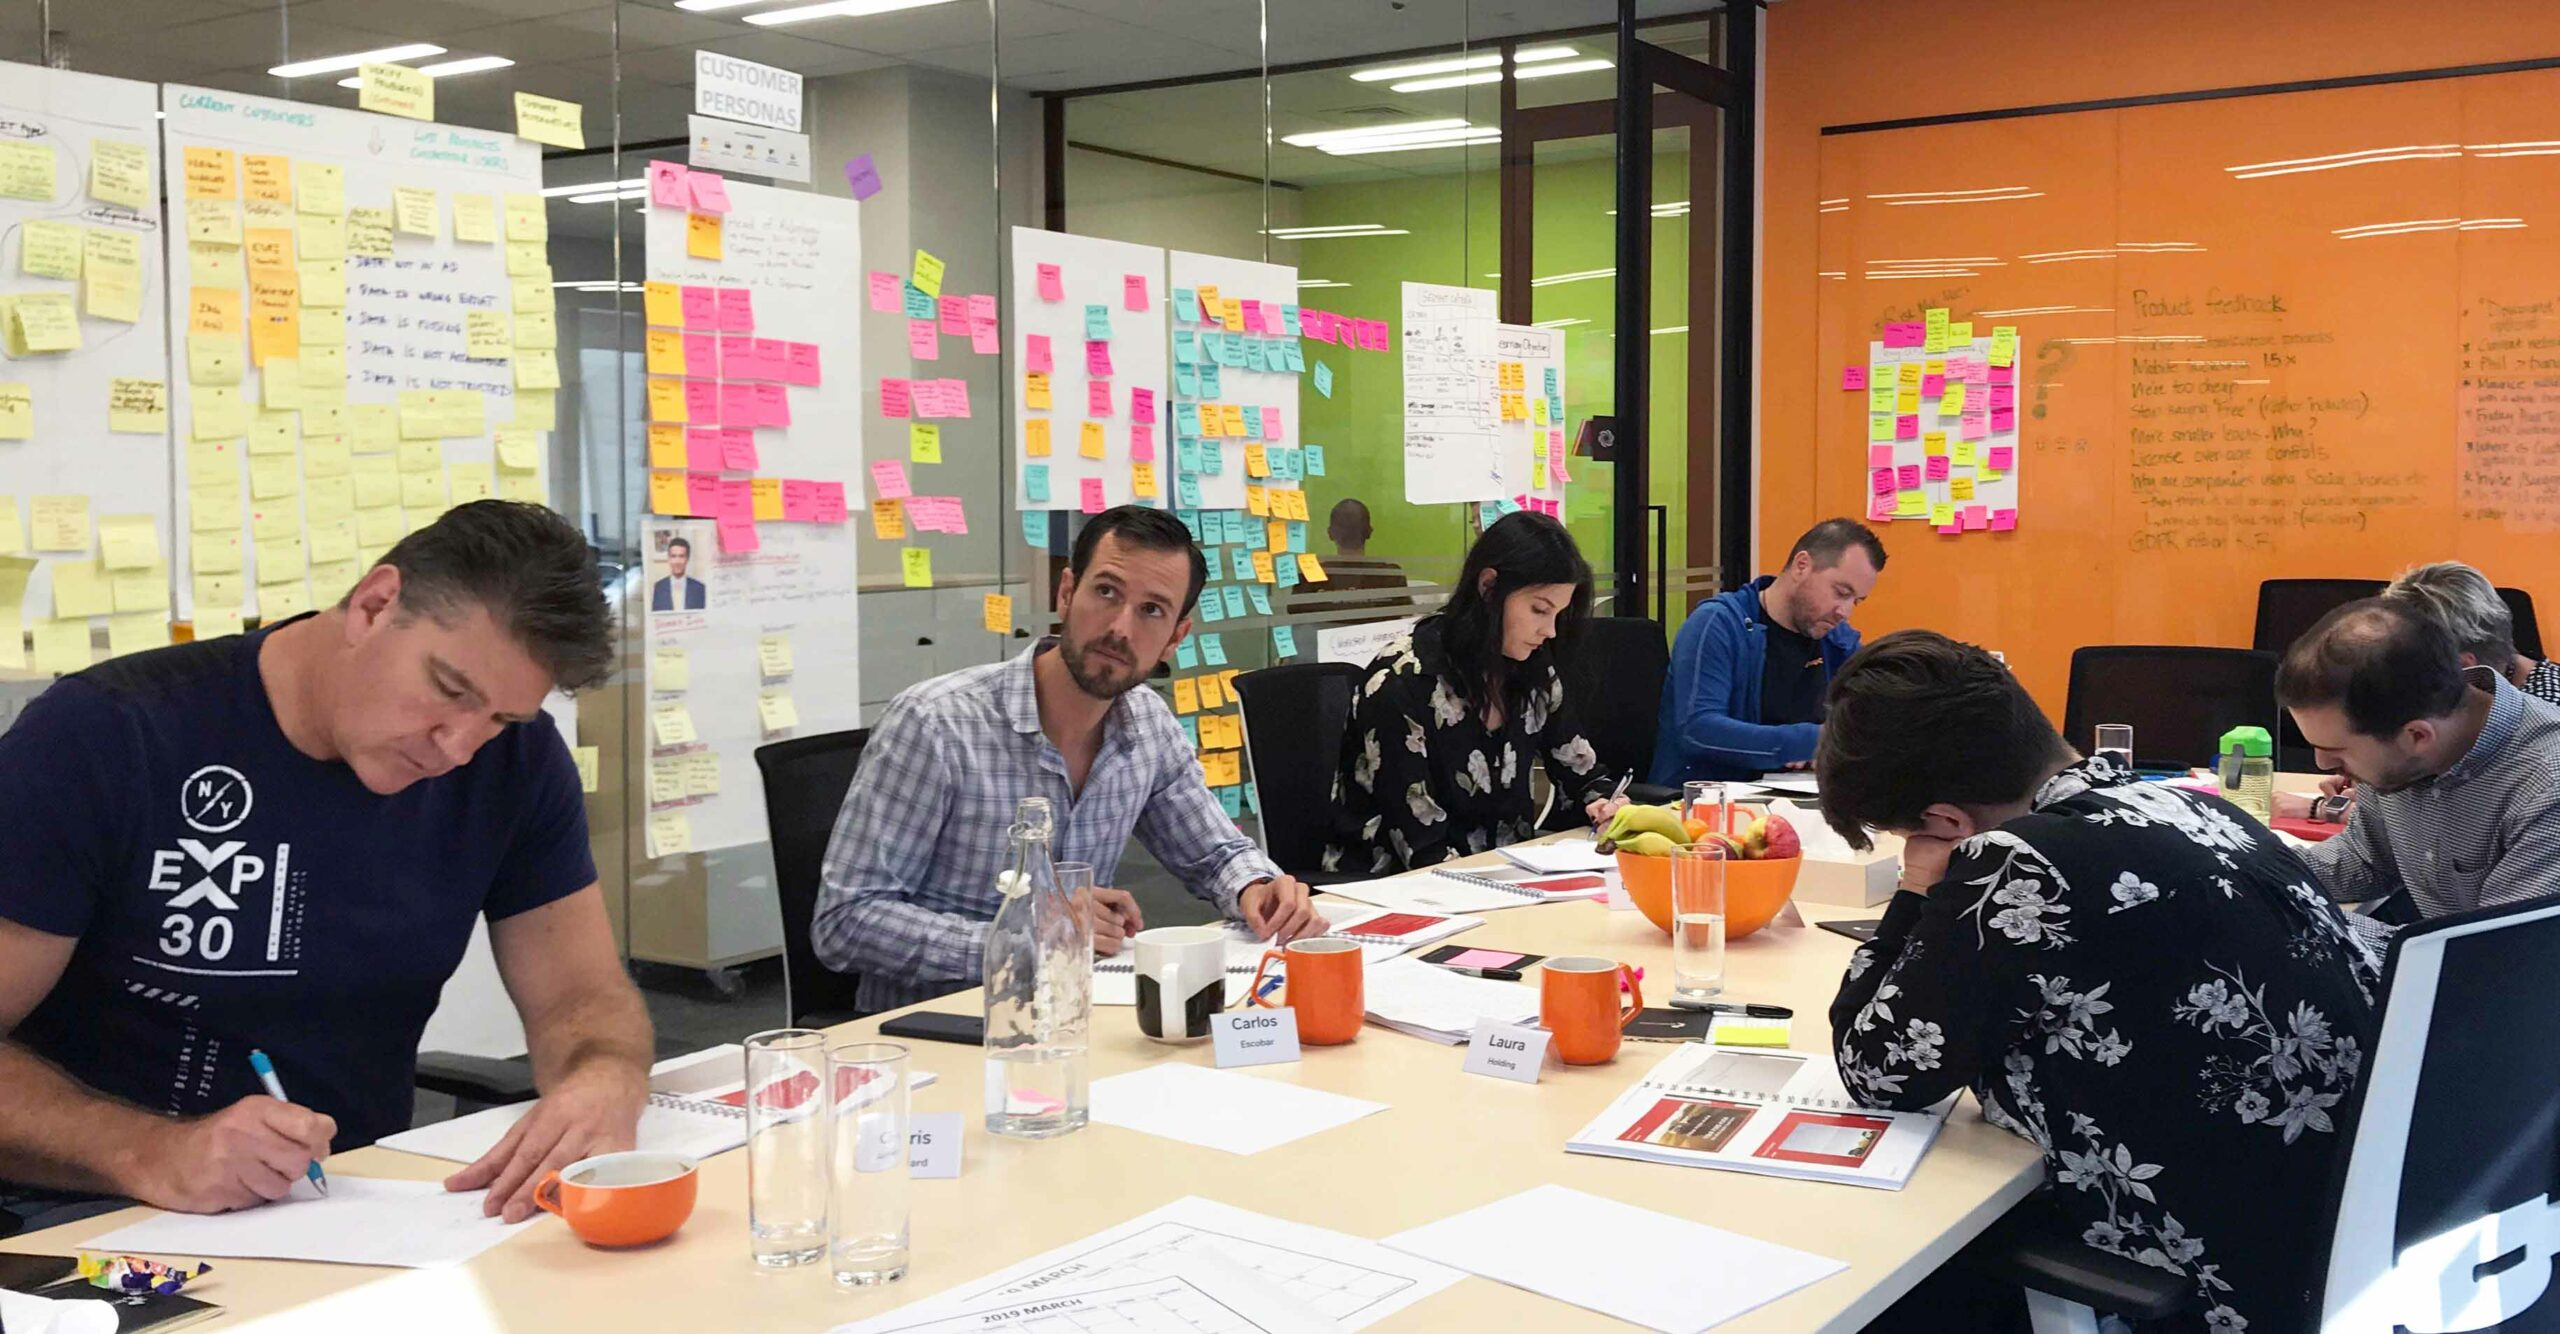 Link of the day: The Agile Business Gap by @brainmates